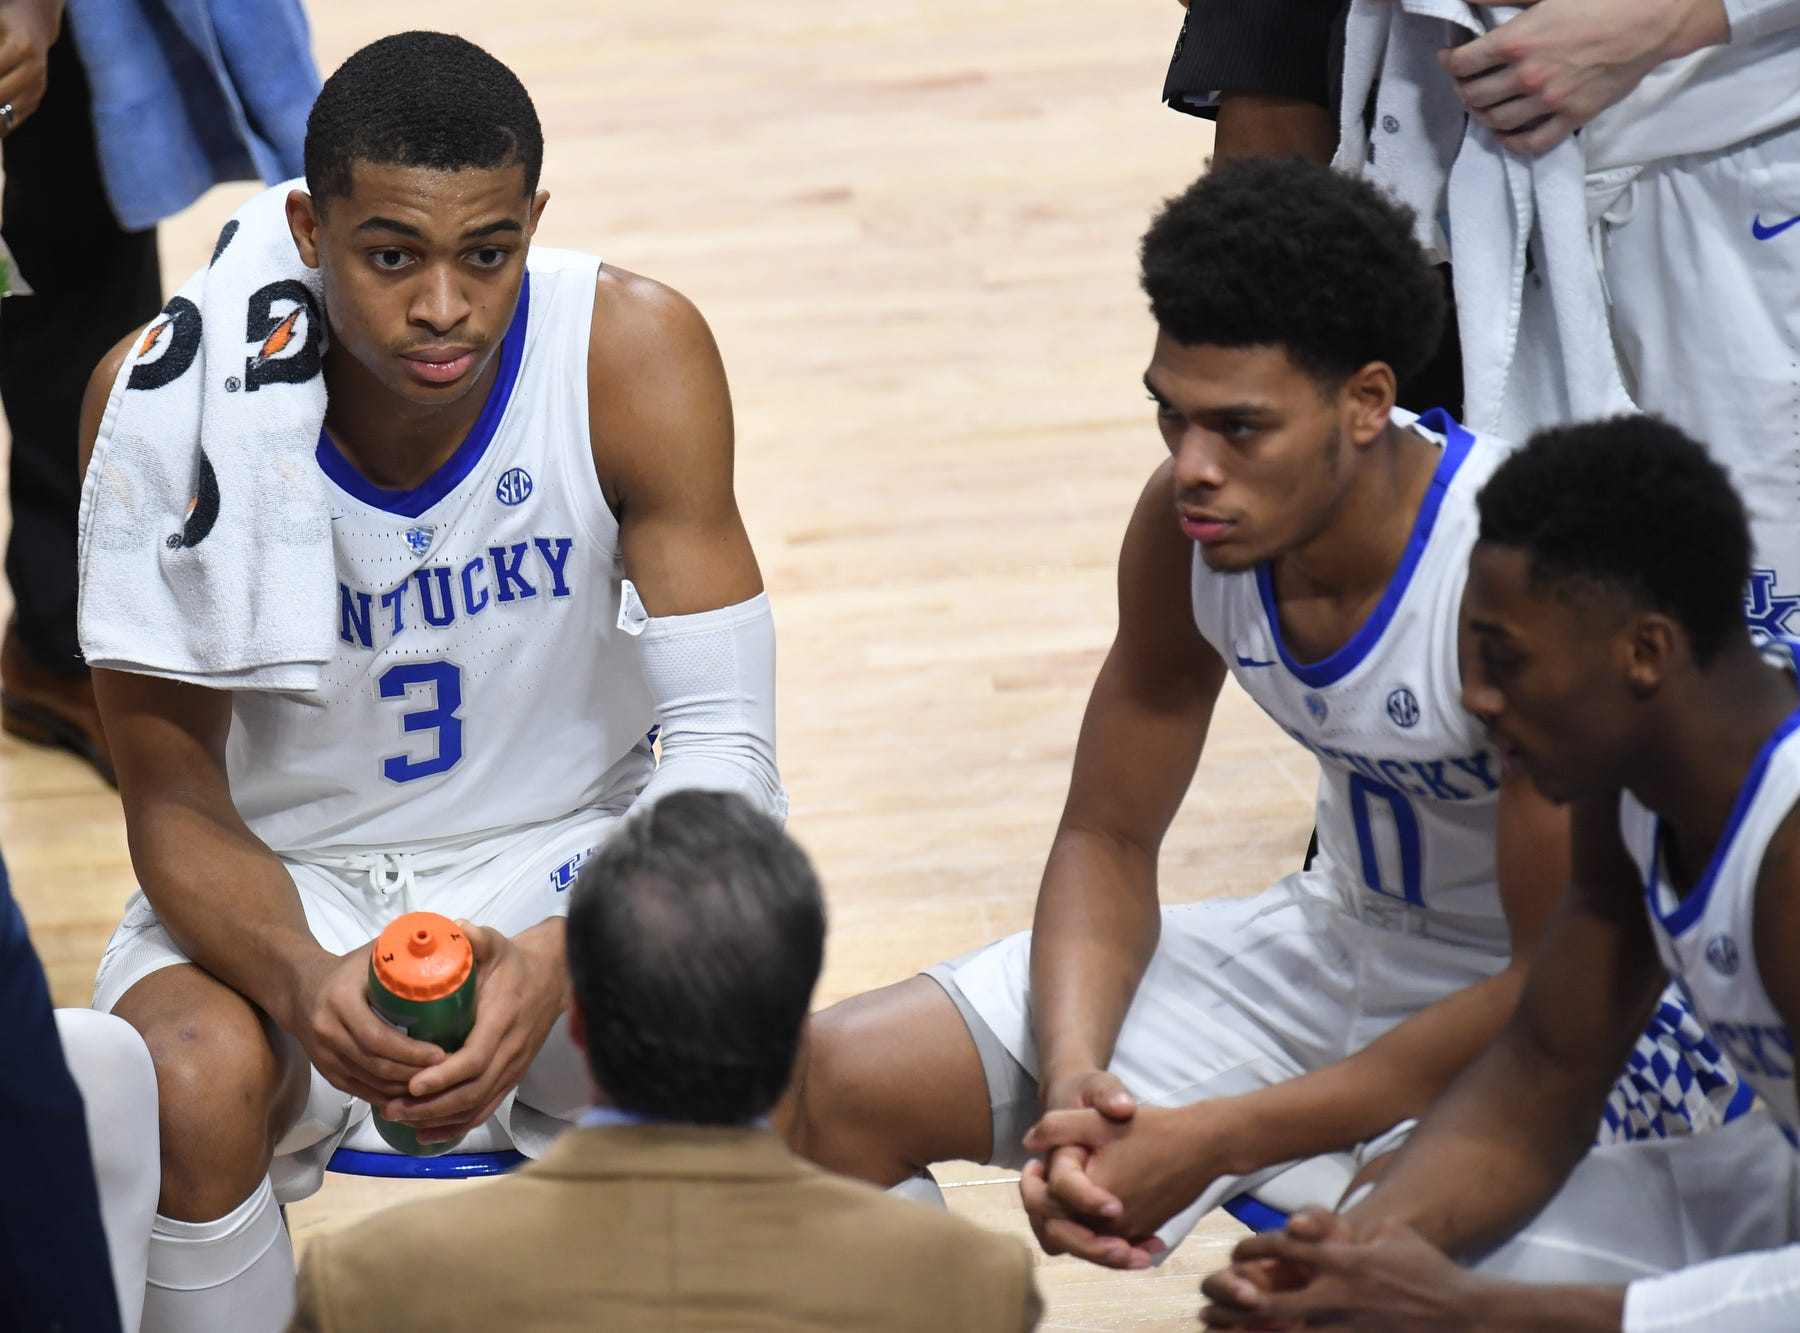 UK timeout during the University of Kentucky mens basketball game against Monmouth at Rupp Arena in Lexington, Kentucky on Wednesday, November 28, 2018.